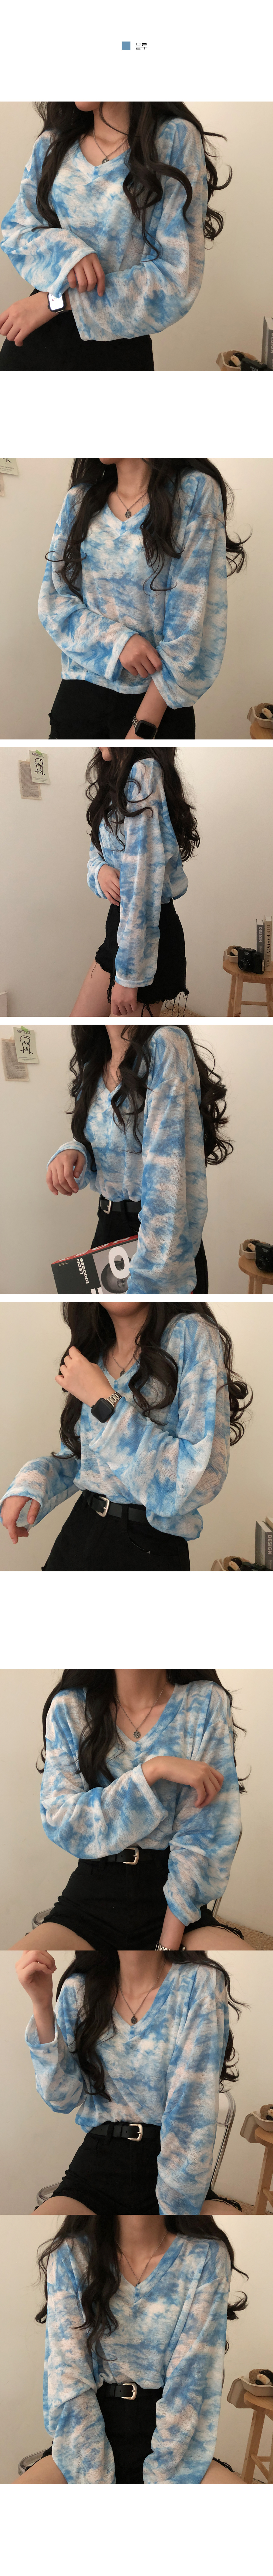 Water print V-Neck Loose-fit Knitwear T-shirt that looks like the sky